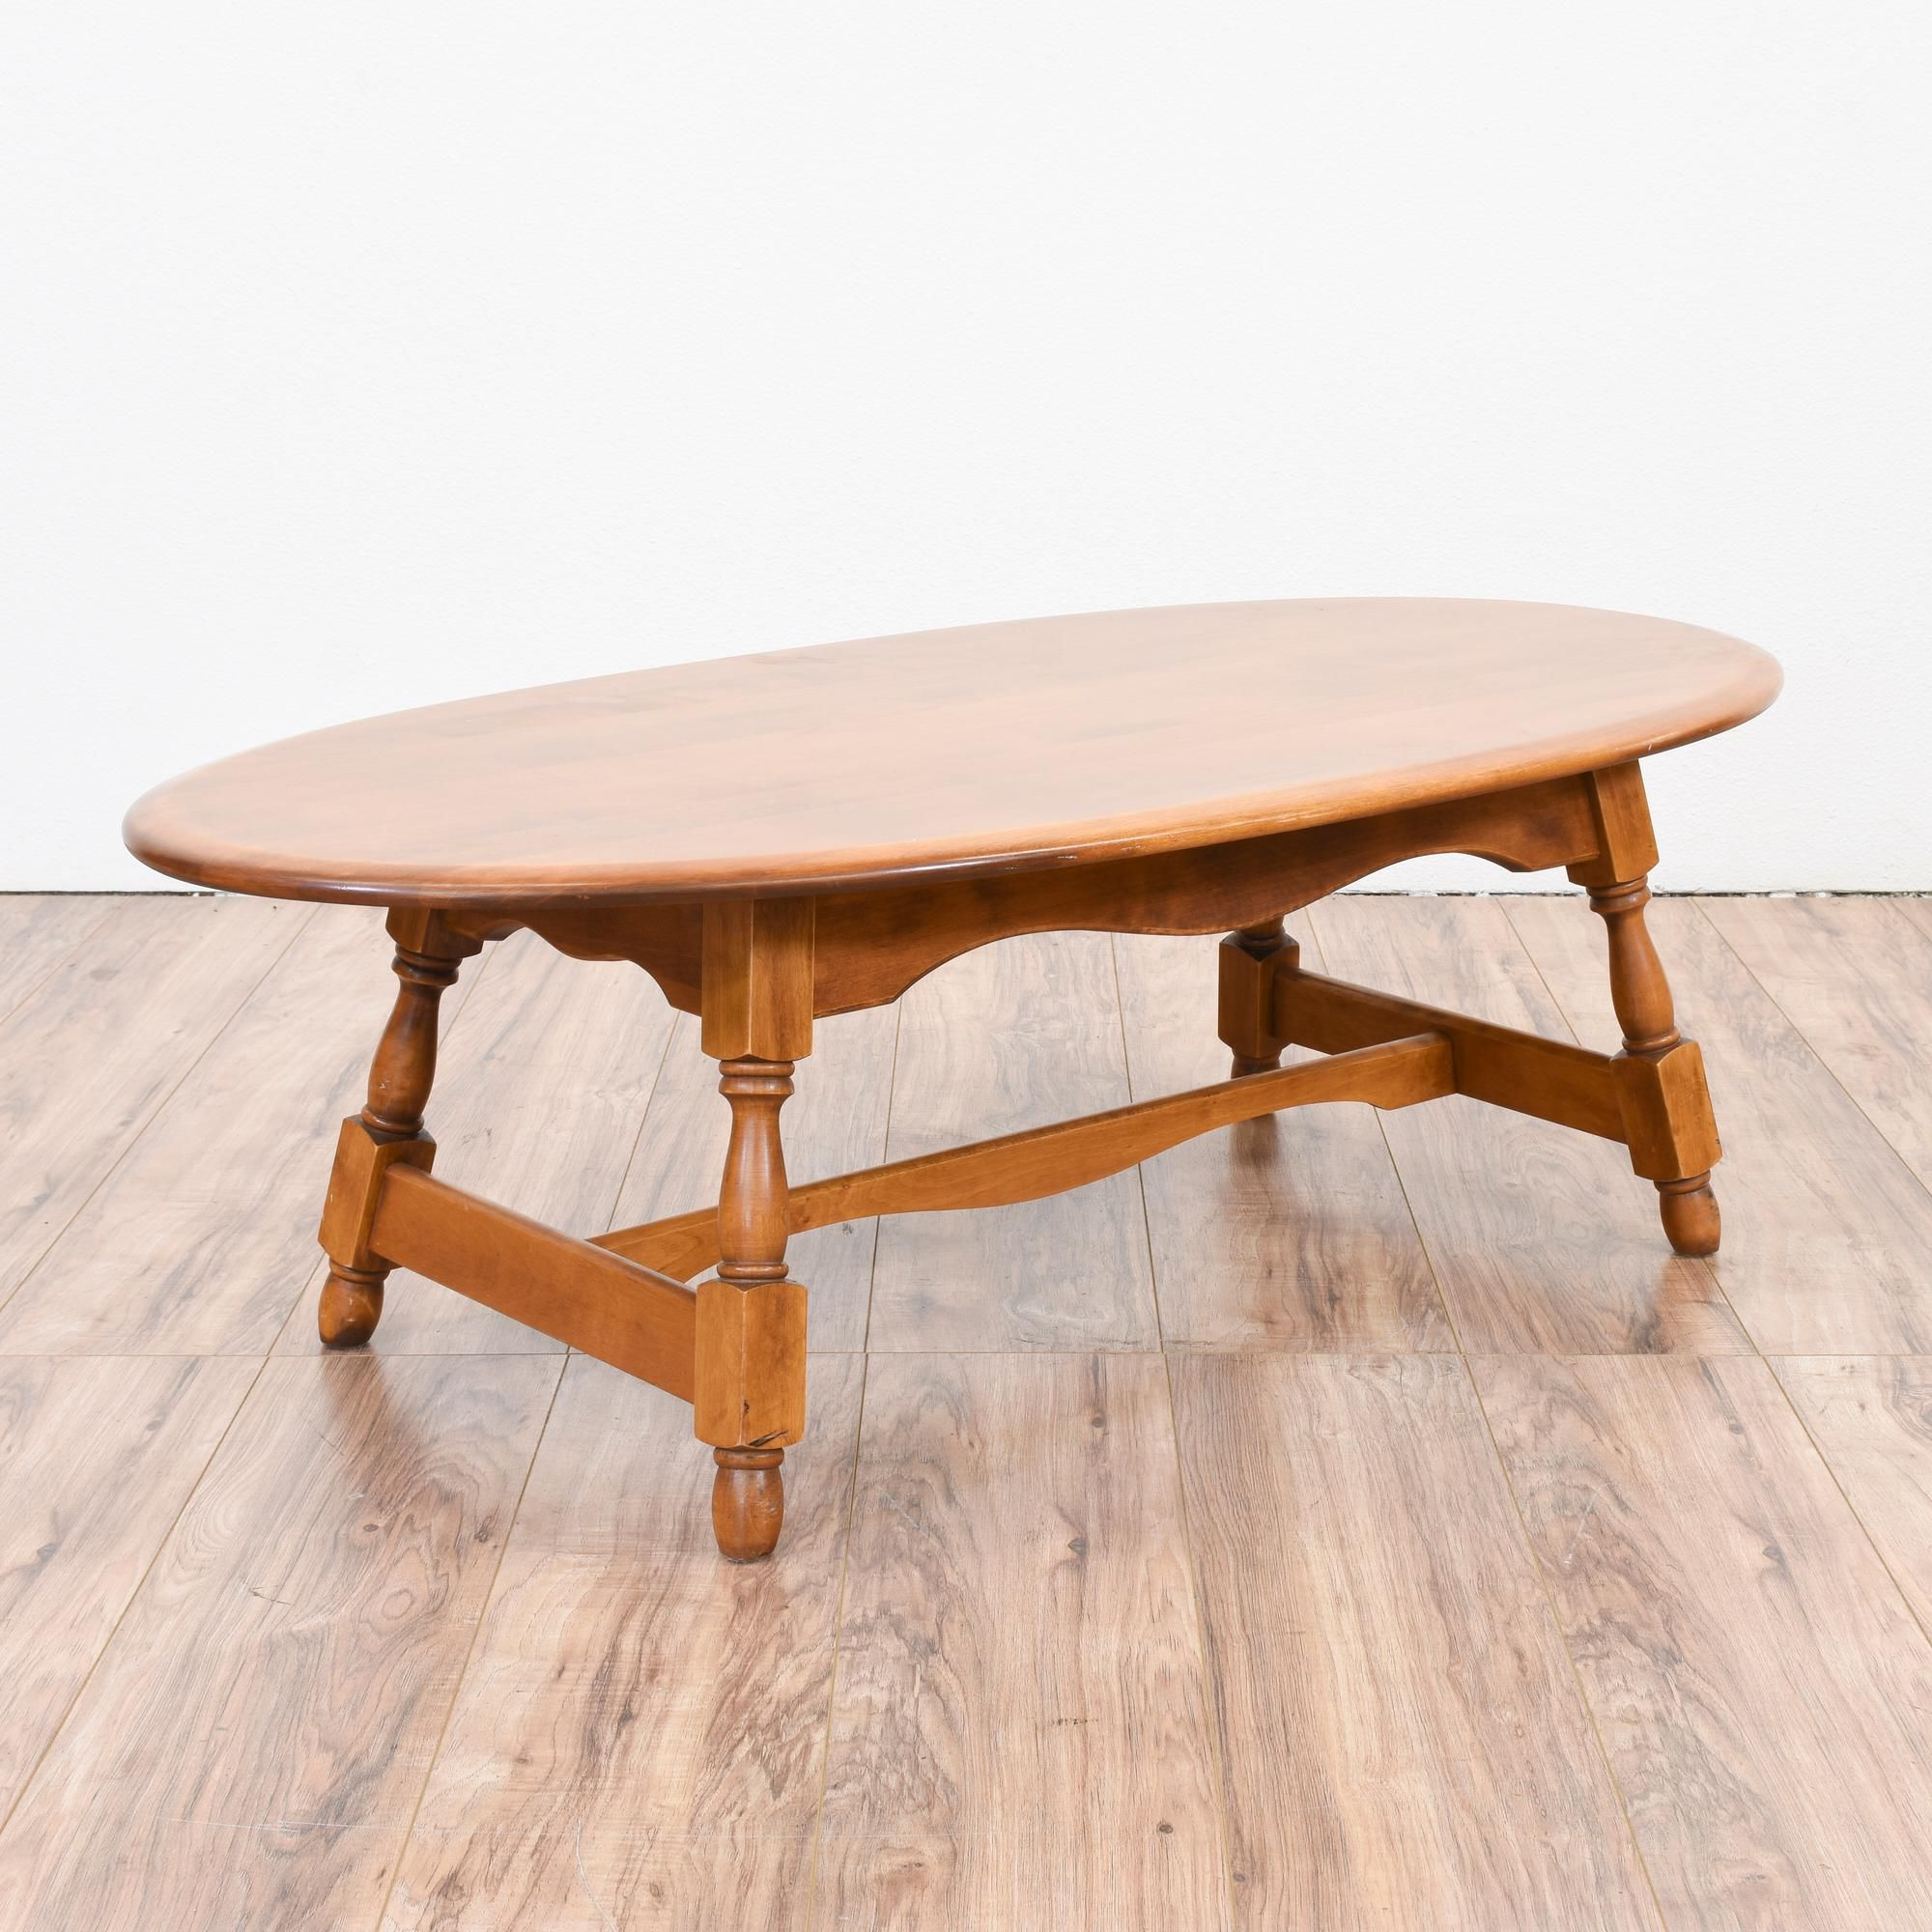 This colonial style coffee table is featured in a solid wood with